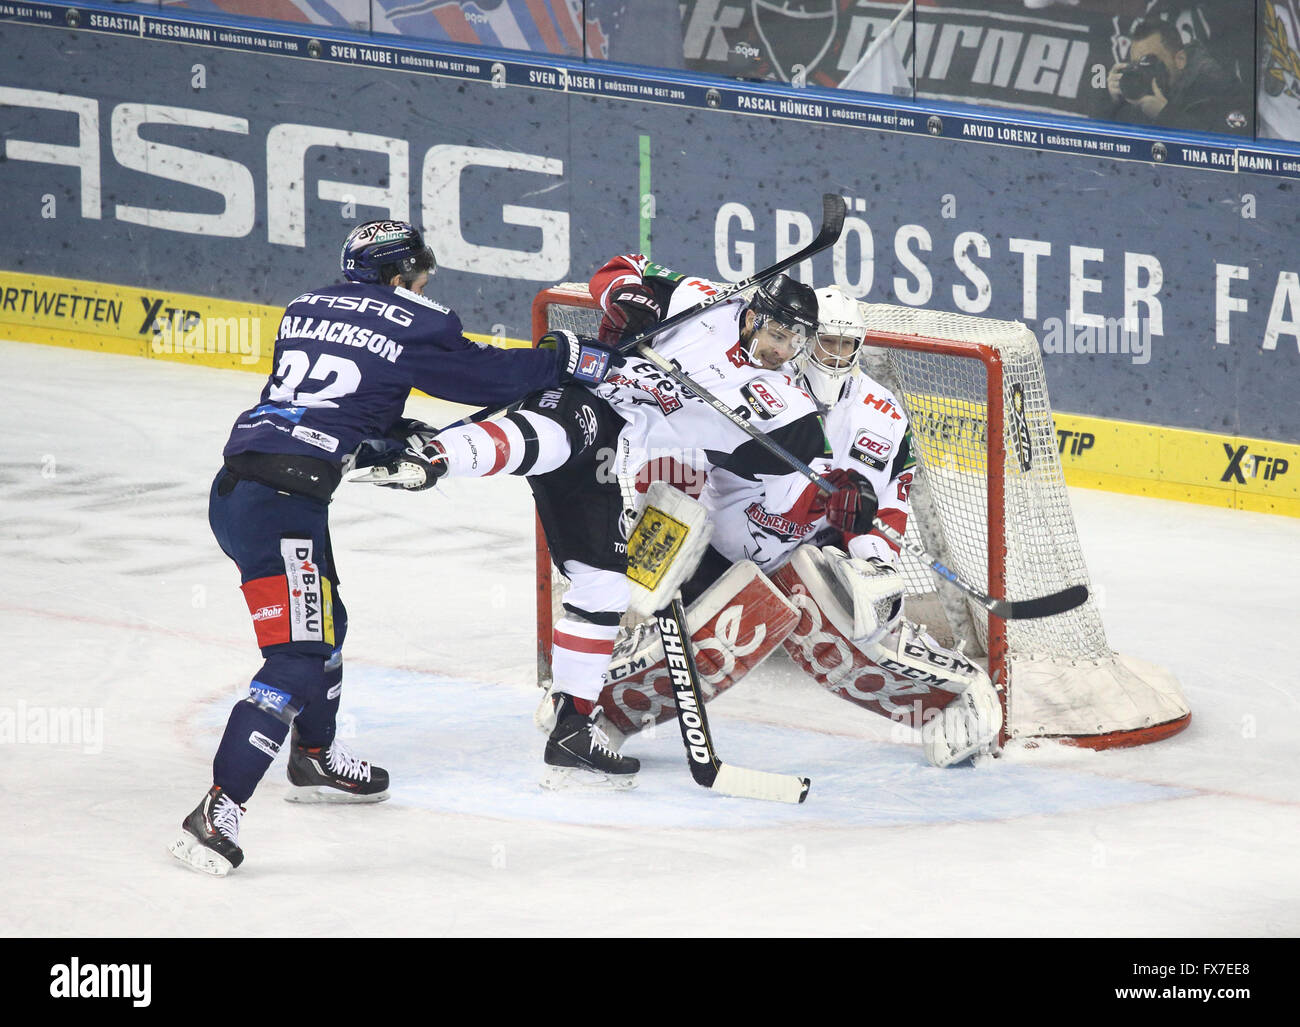 Goal mouth action from a professional ice hockey match between Berlin's Eisbären and Cologne, March 2016 - Stock Image